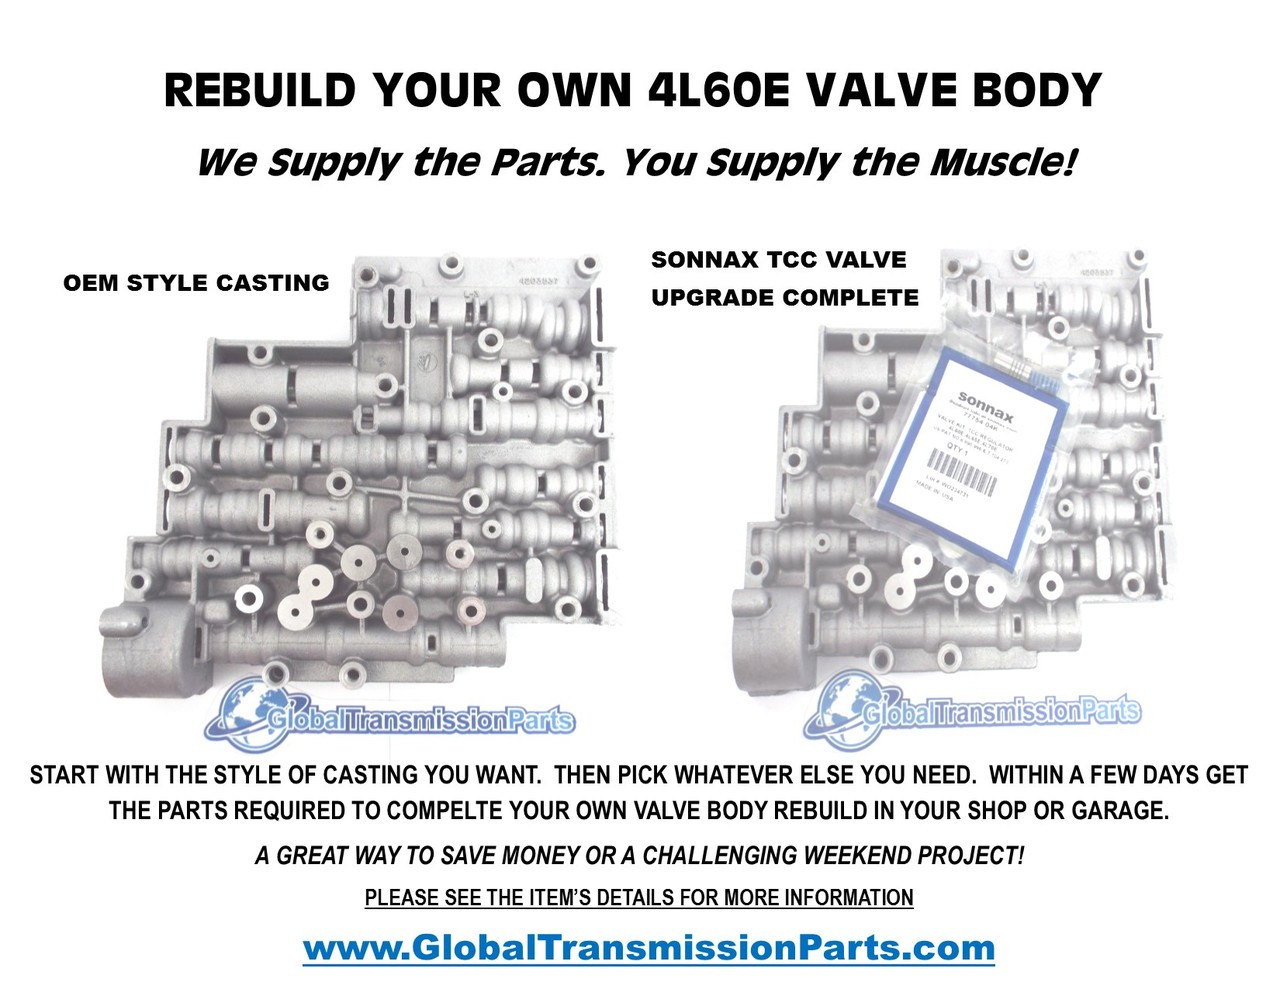 hight resolution of rebuild your own e transmission valve body parts easy jpg 1280x989 a618 transmission valve body